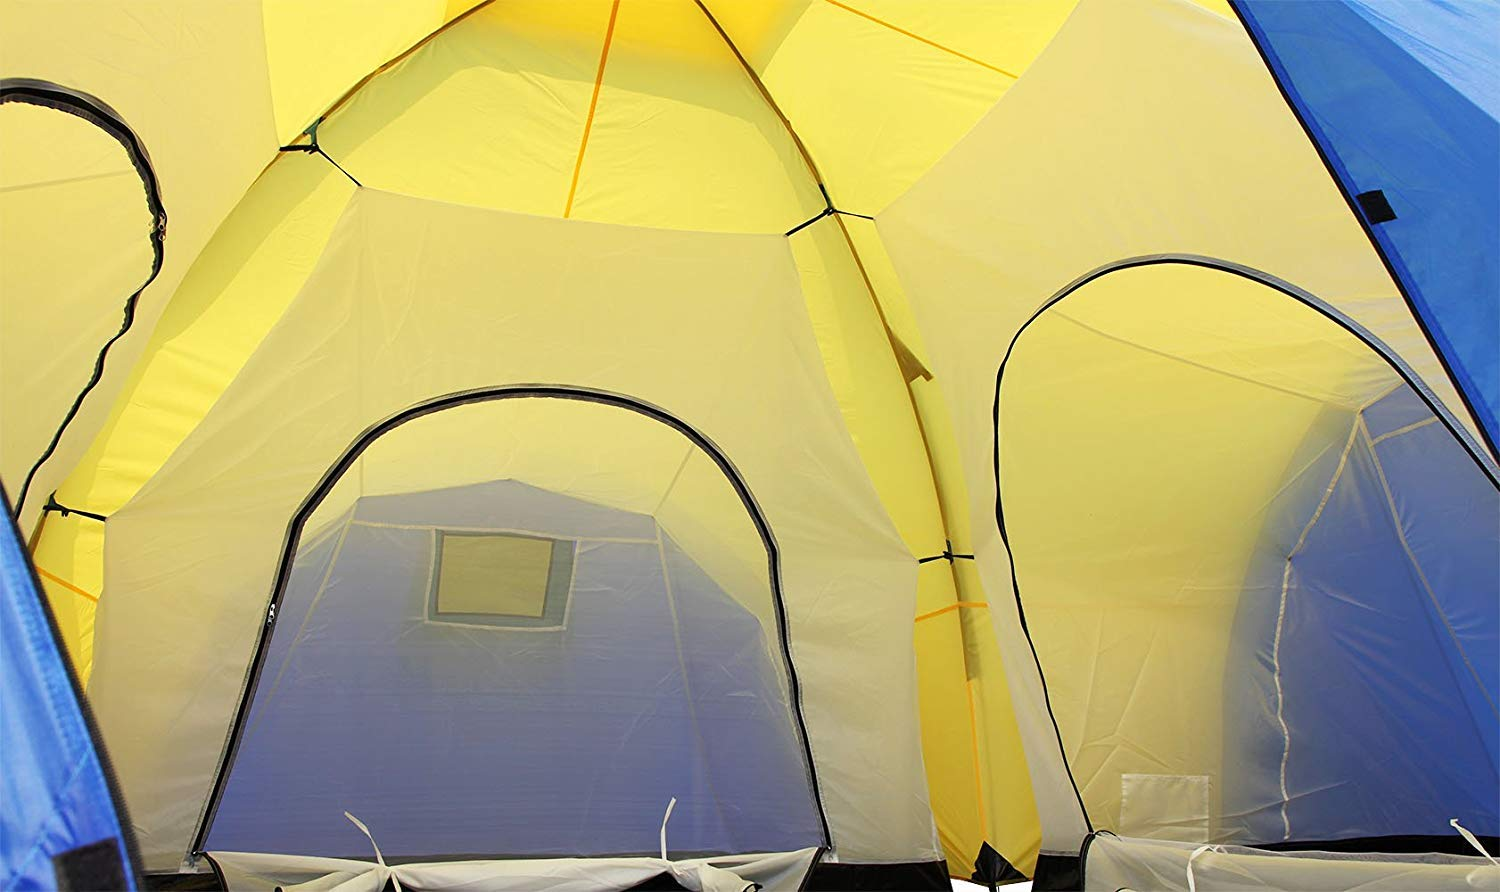 Peaktop 3 Bedrooms 1 Large Living Room 8 Persons Camping Tent Family Group Double Poles Hiking Beach Outdoor Tunnel Dome 3000mm Waterproof &UV Coated Bright Color 1 Year Warranty (5 Shapes) 7